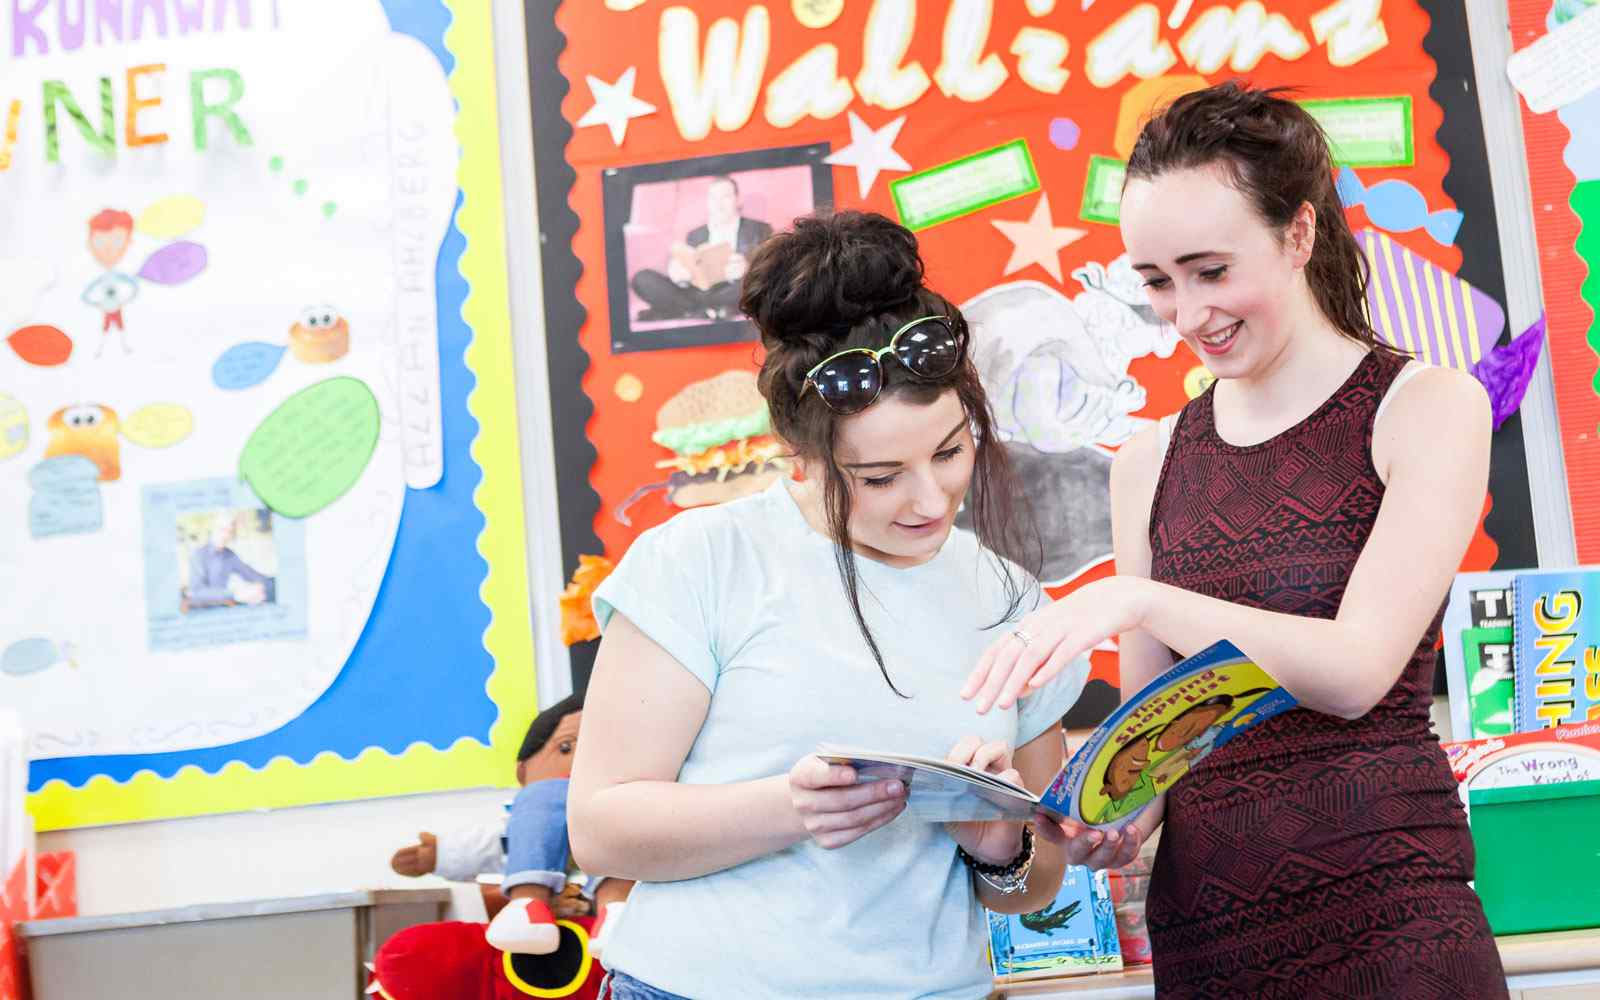 Two students reading a book in primary education classroom